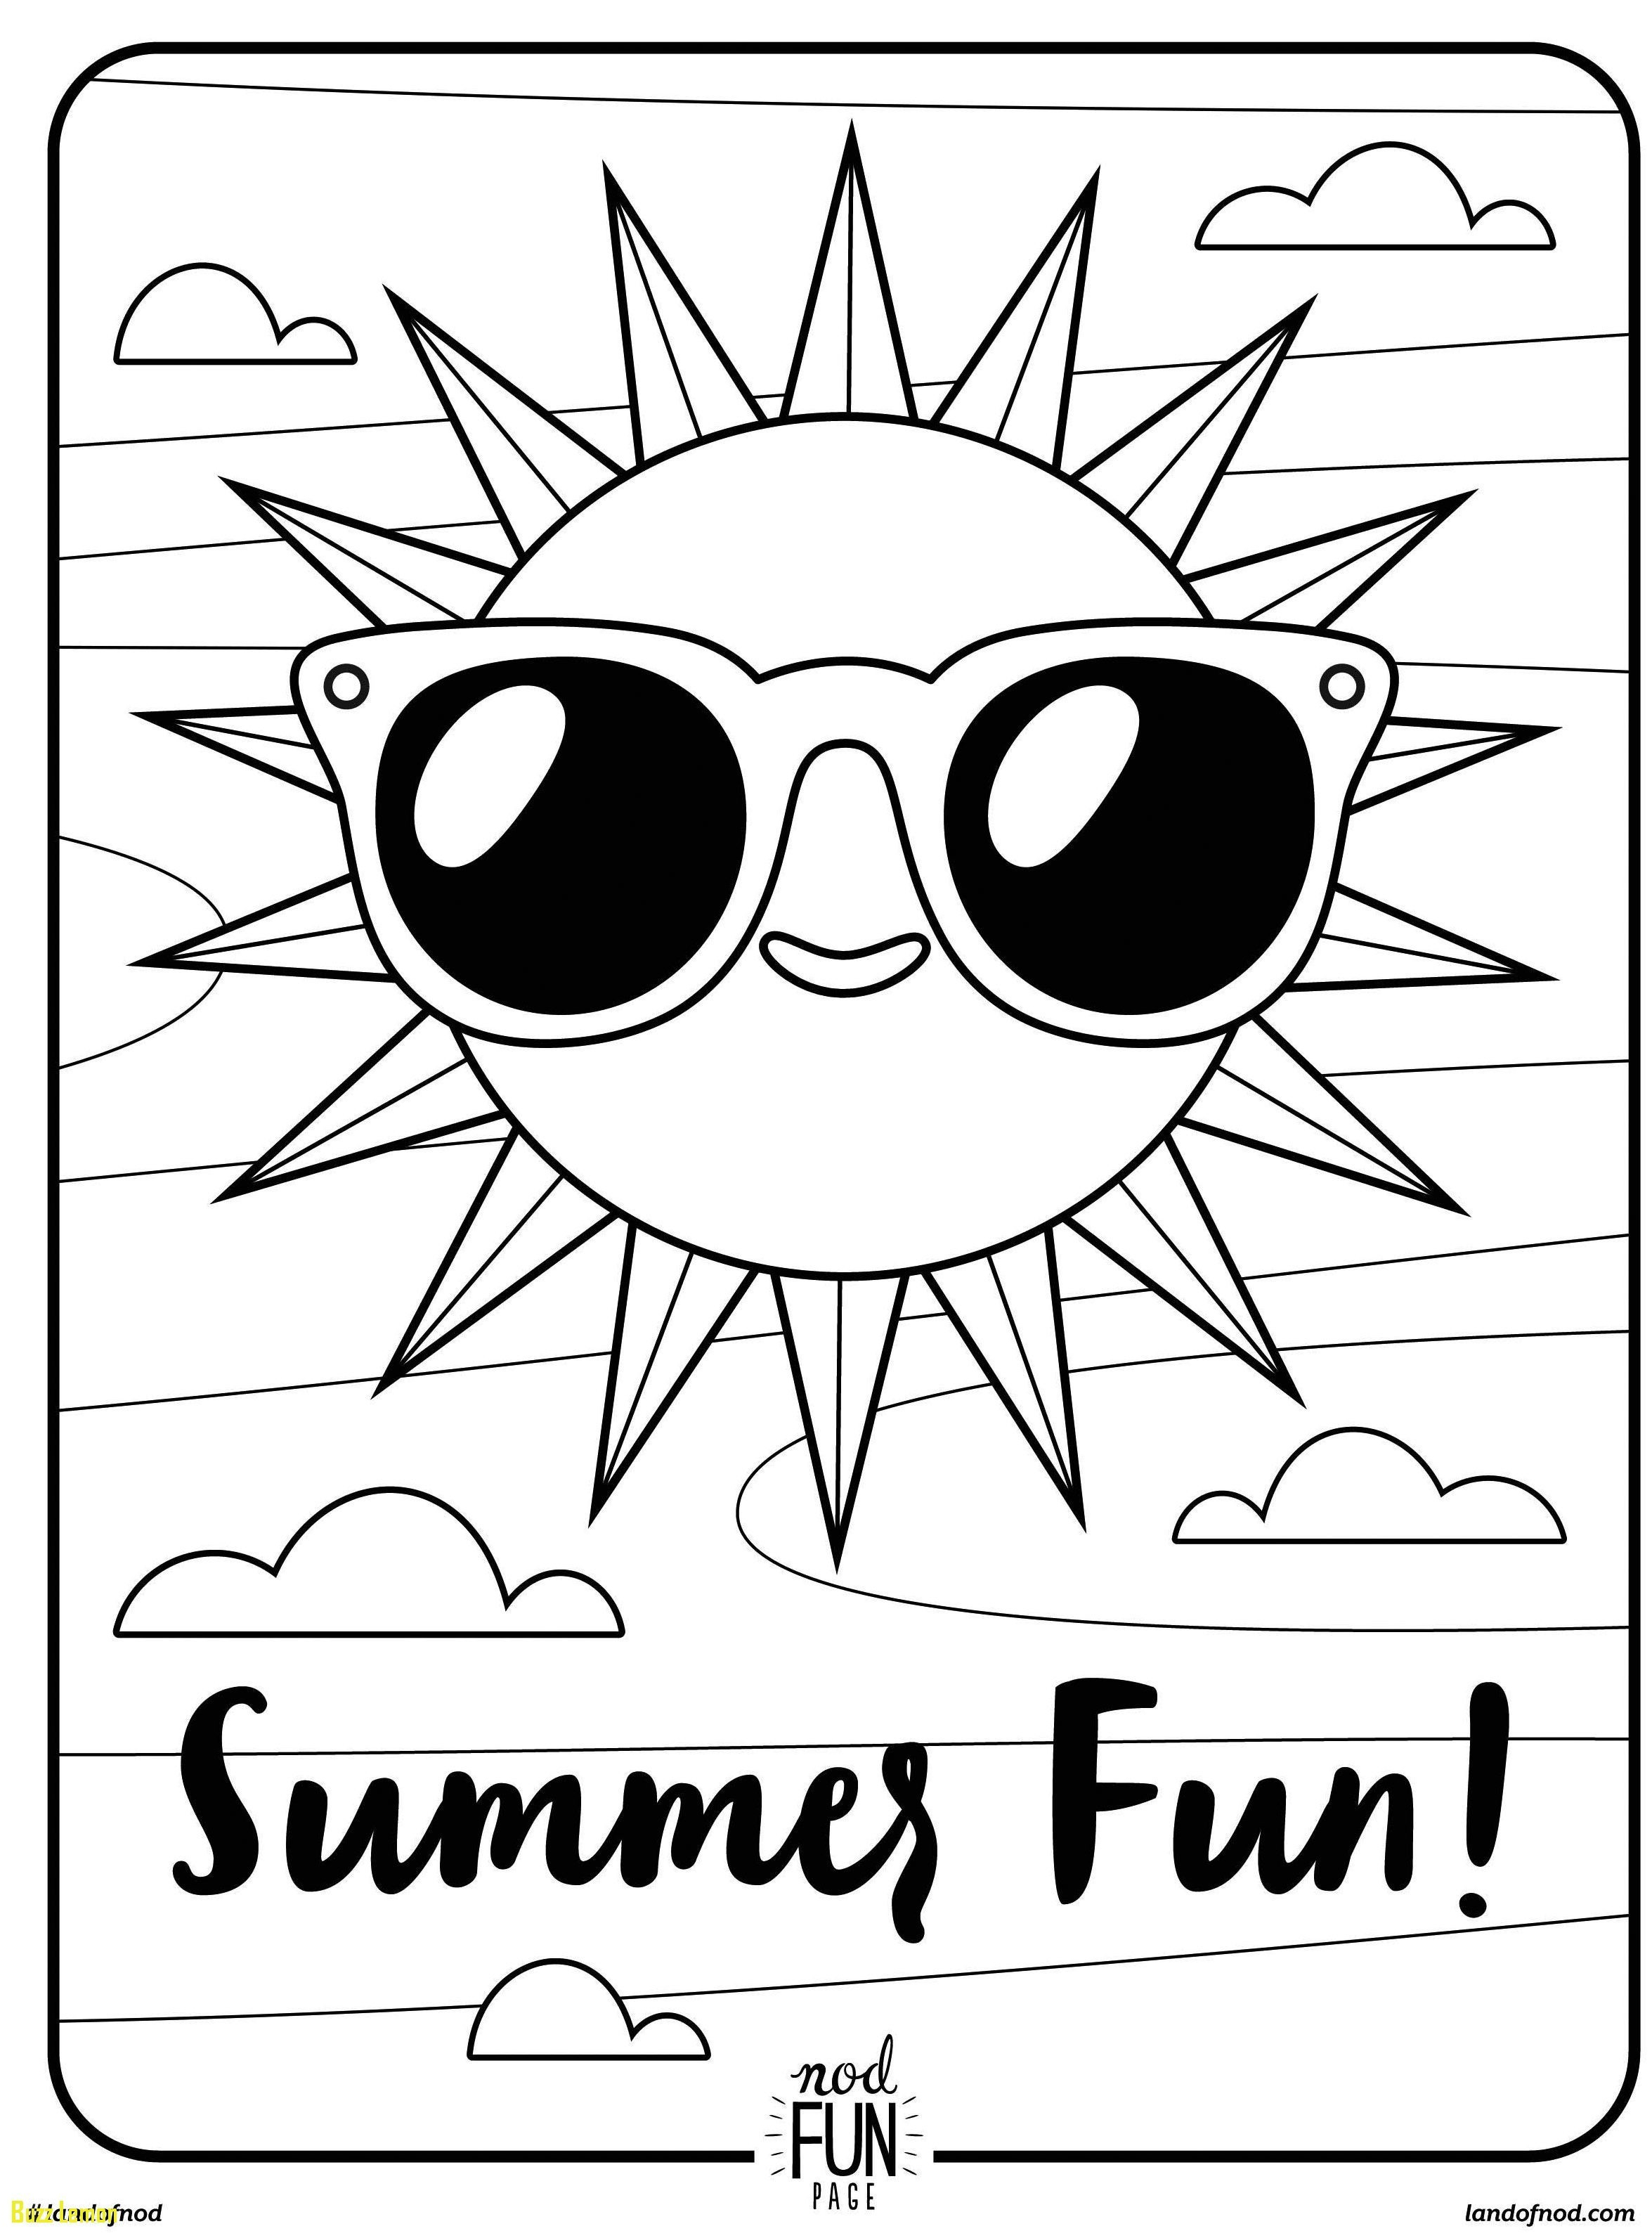 Coloring Pages : Printable Summer Coloring Pages Beach Free For - Free Printable Summer Coloring Pages For Adults